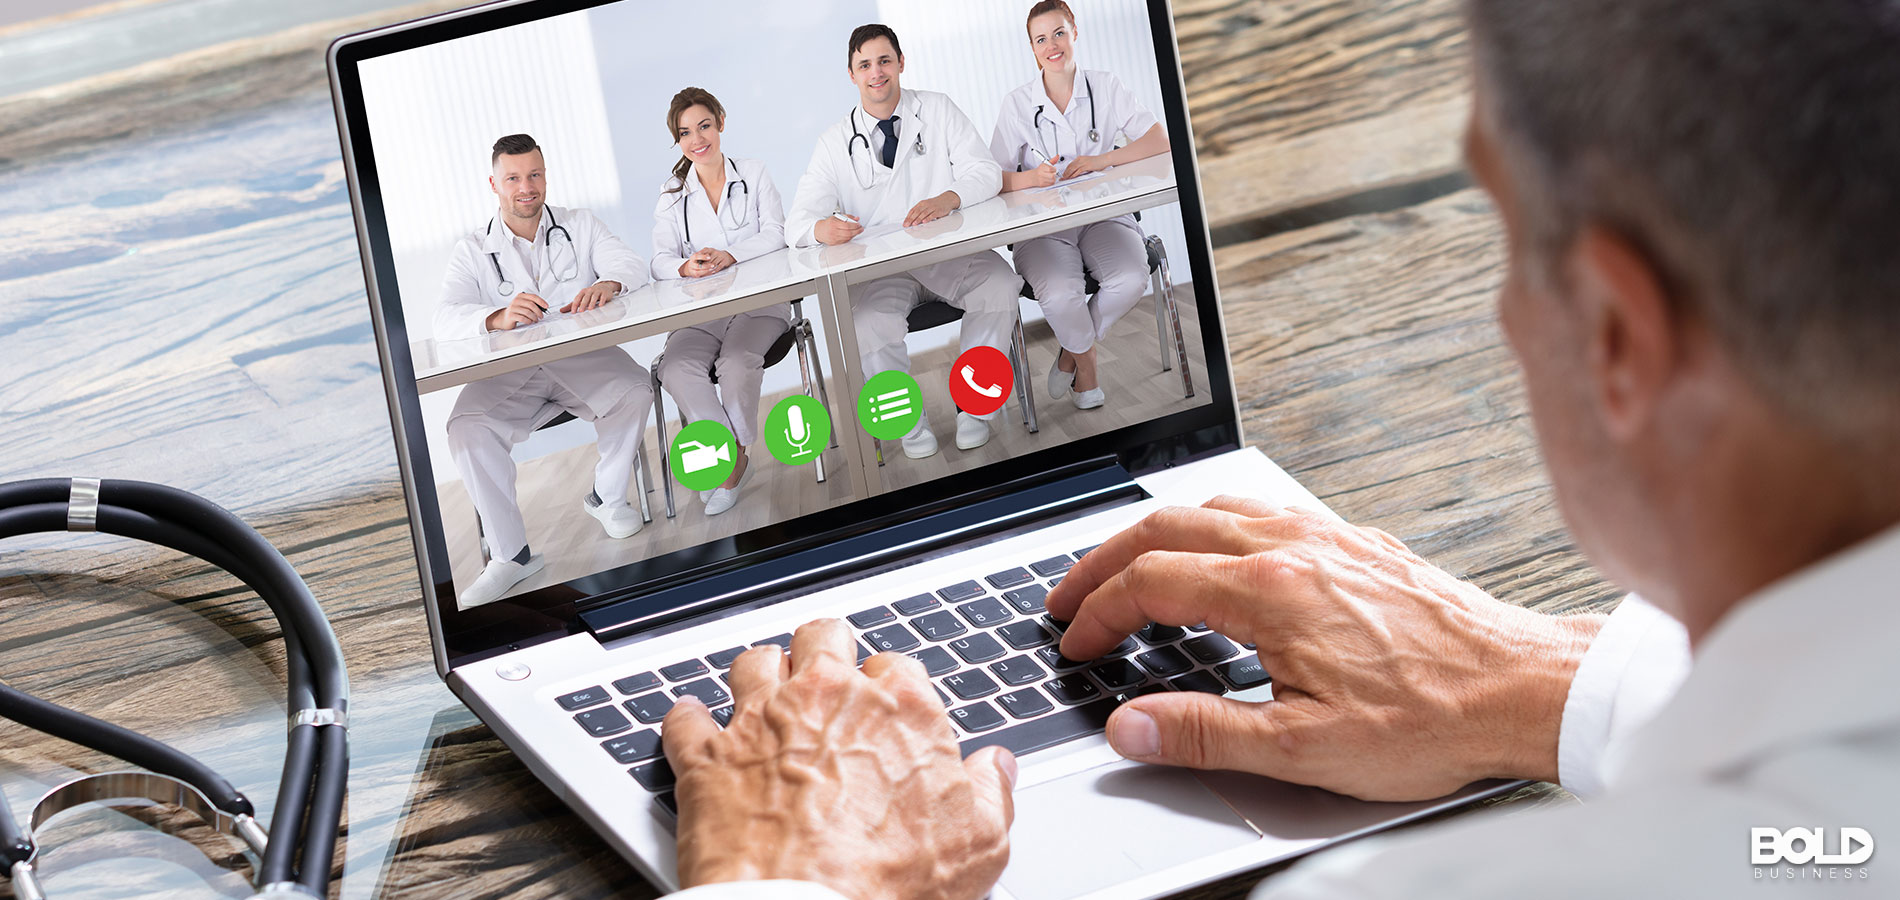 A medical professional conversing with his peers online